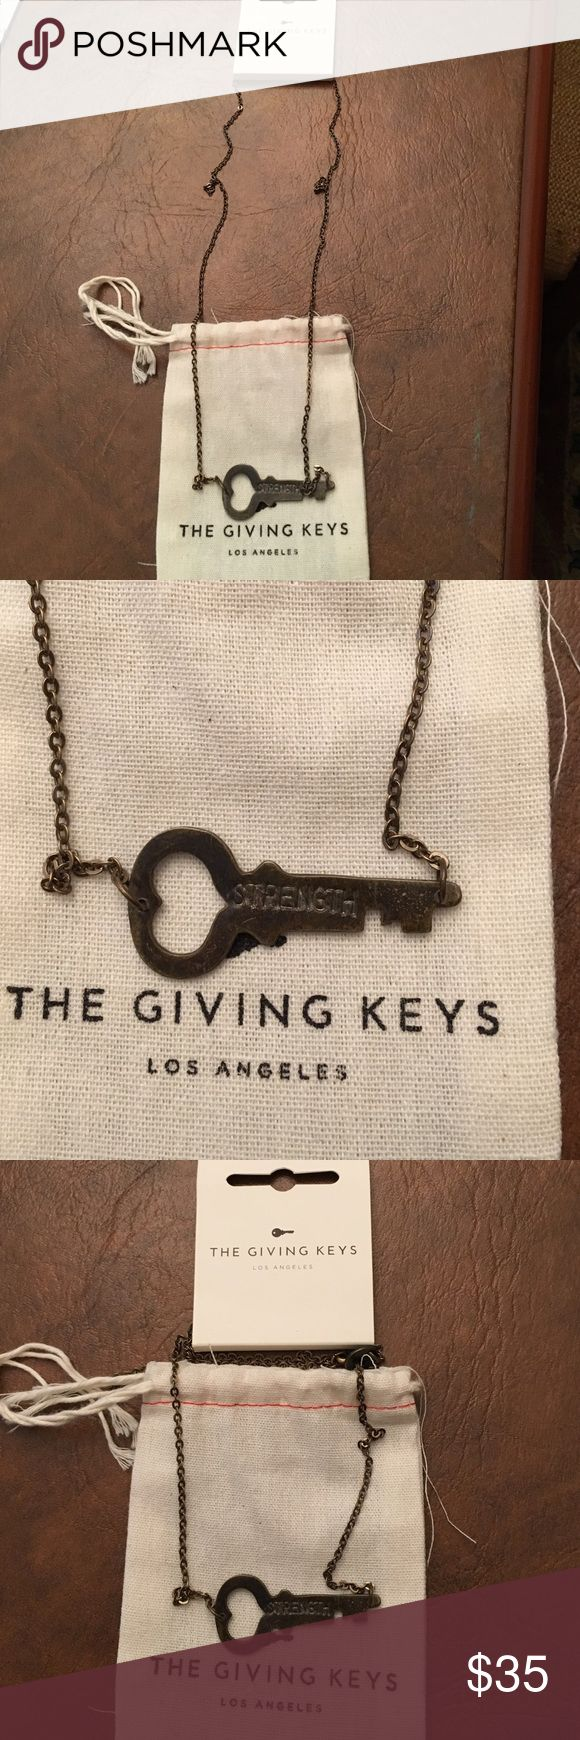 The Giving Key necklace. NWT. STRENGTH. The Giving Key necklace. NWT. STRENGTH. The Giving Keys Jewelry Necklaces